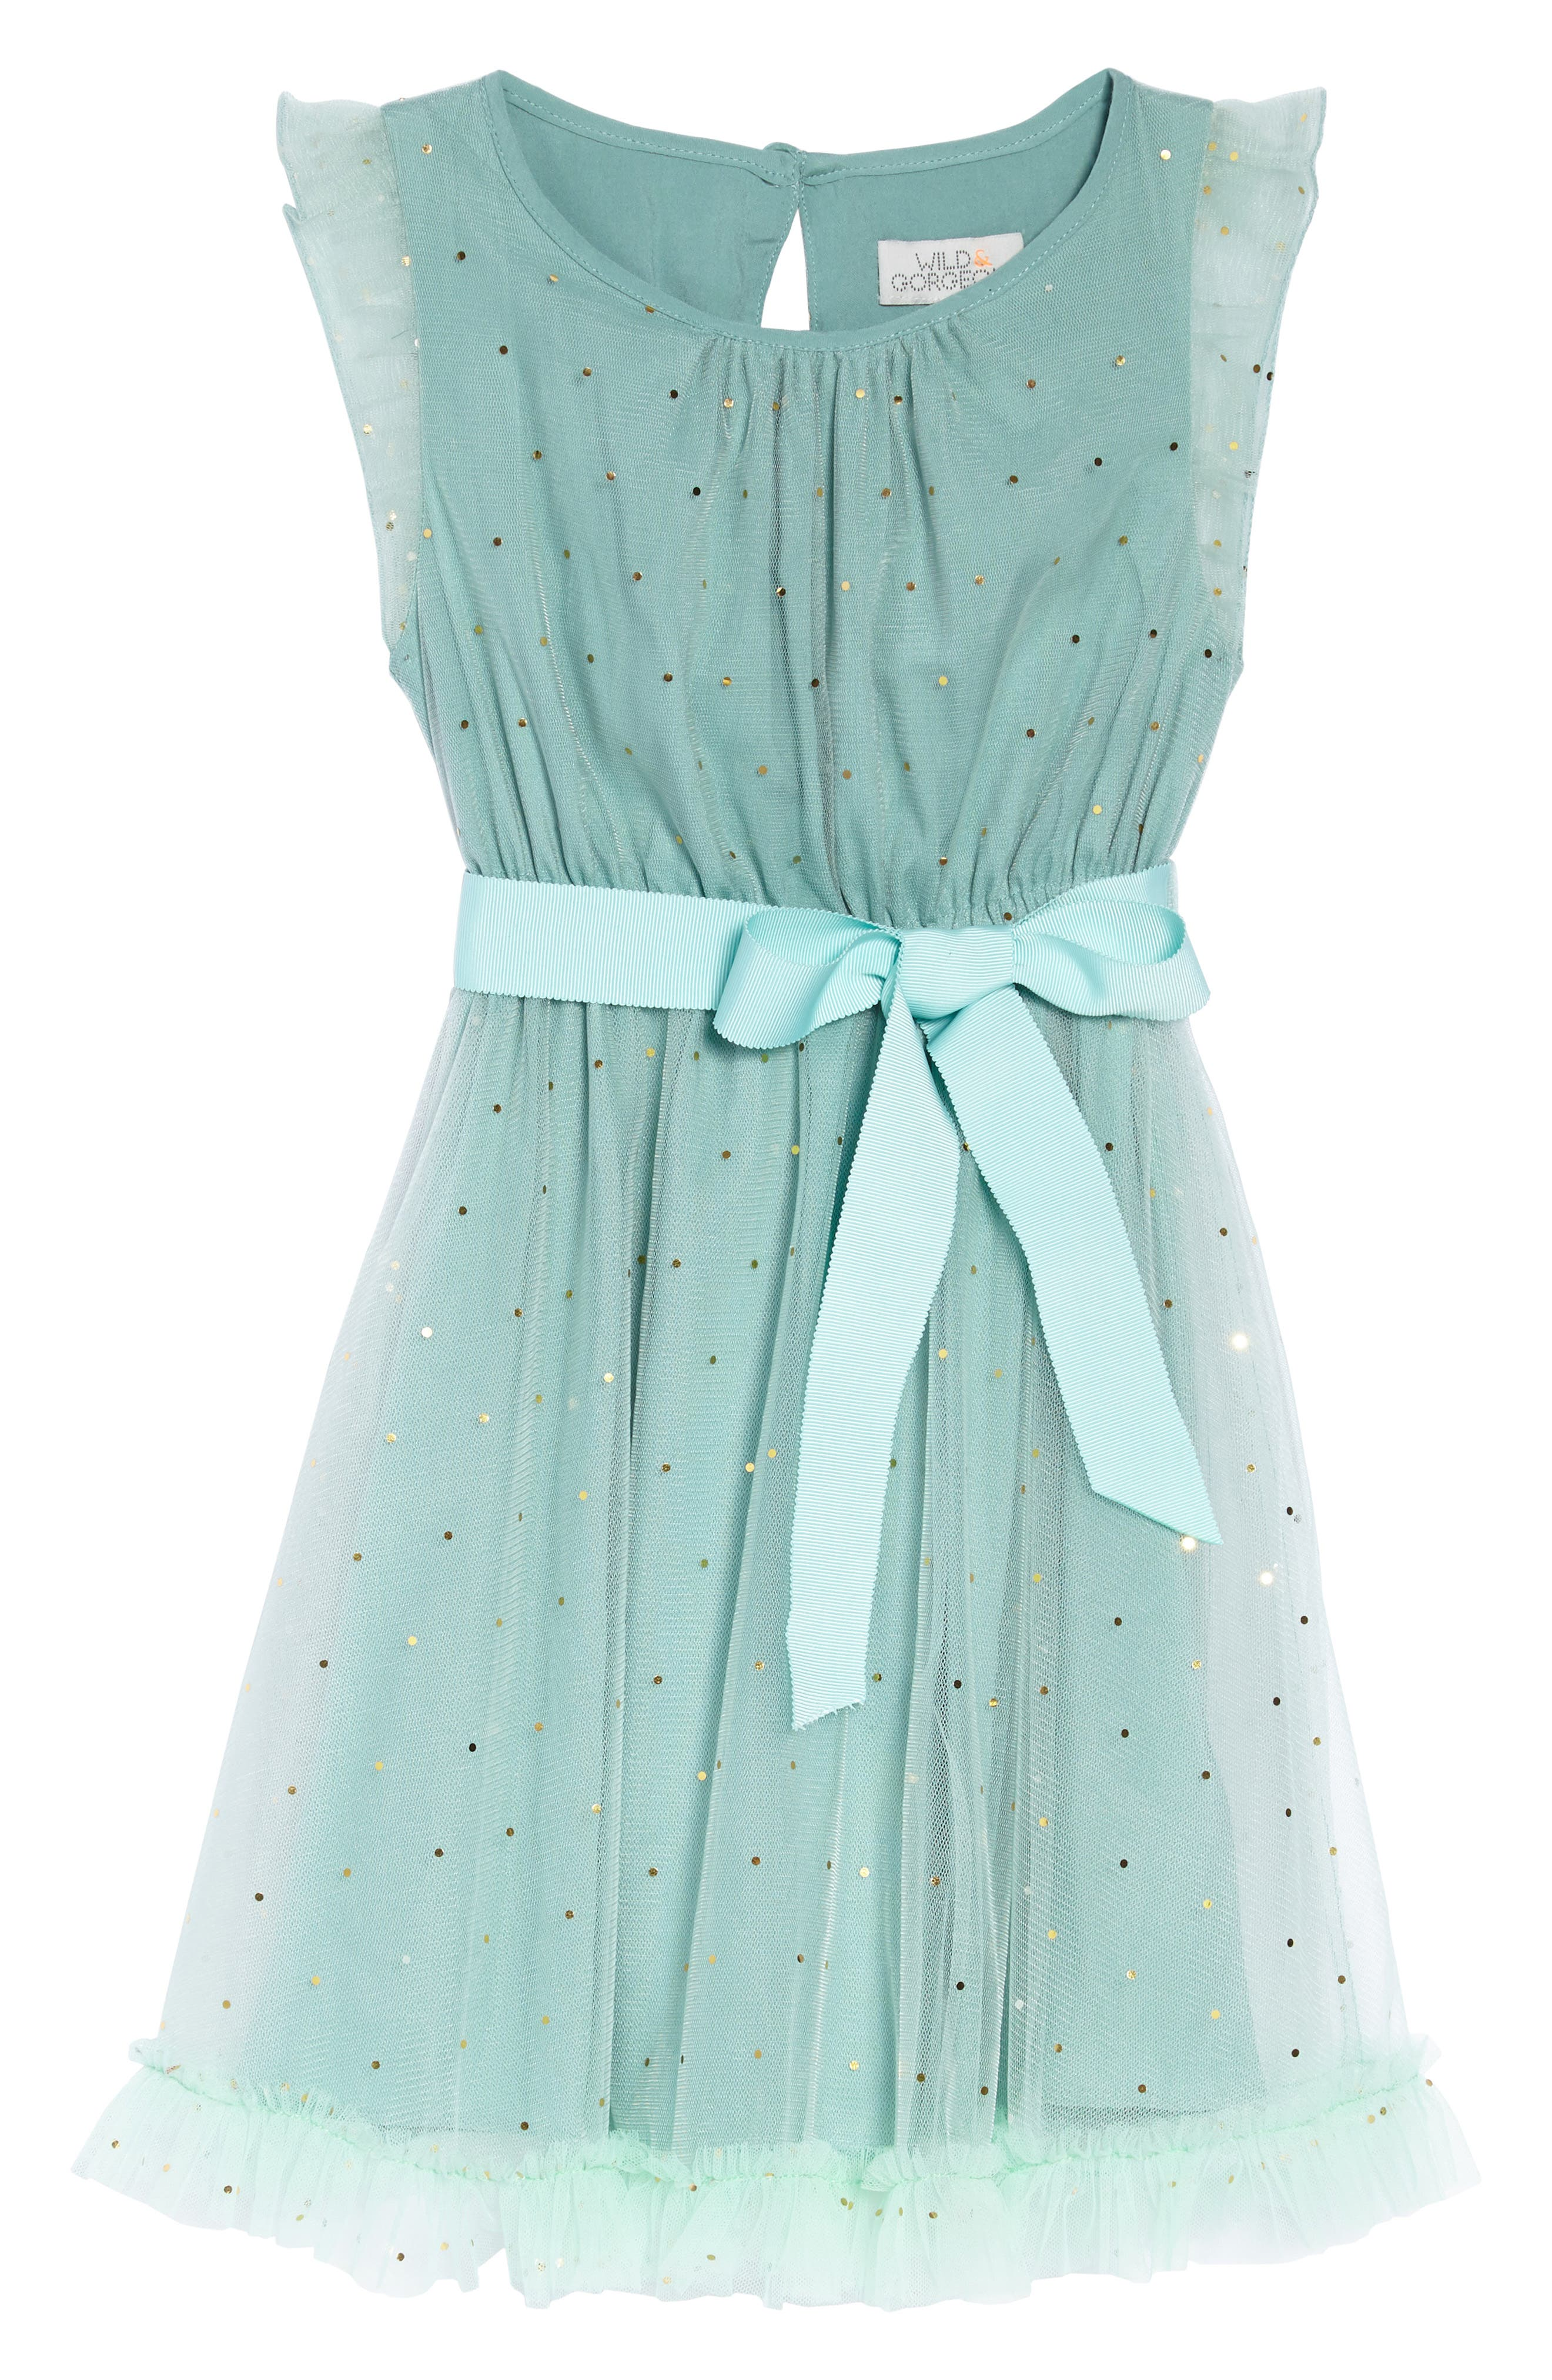 Girls\' Green Party Dresses & Rompers: Everyday & Special Occasion ...